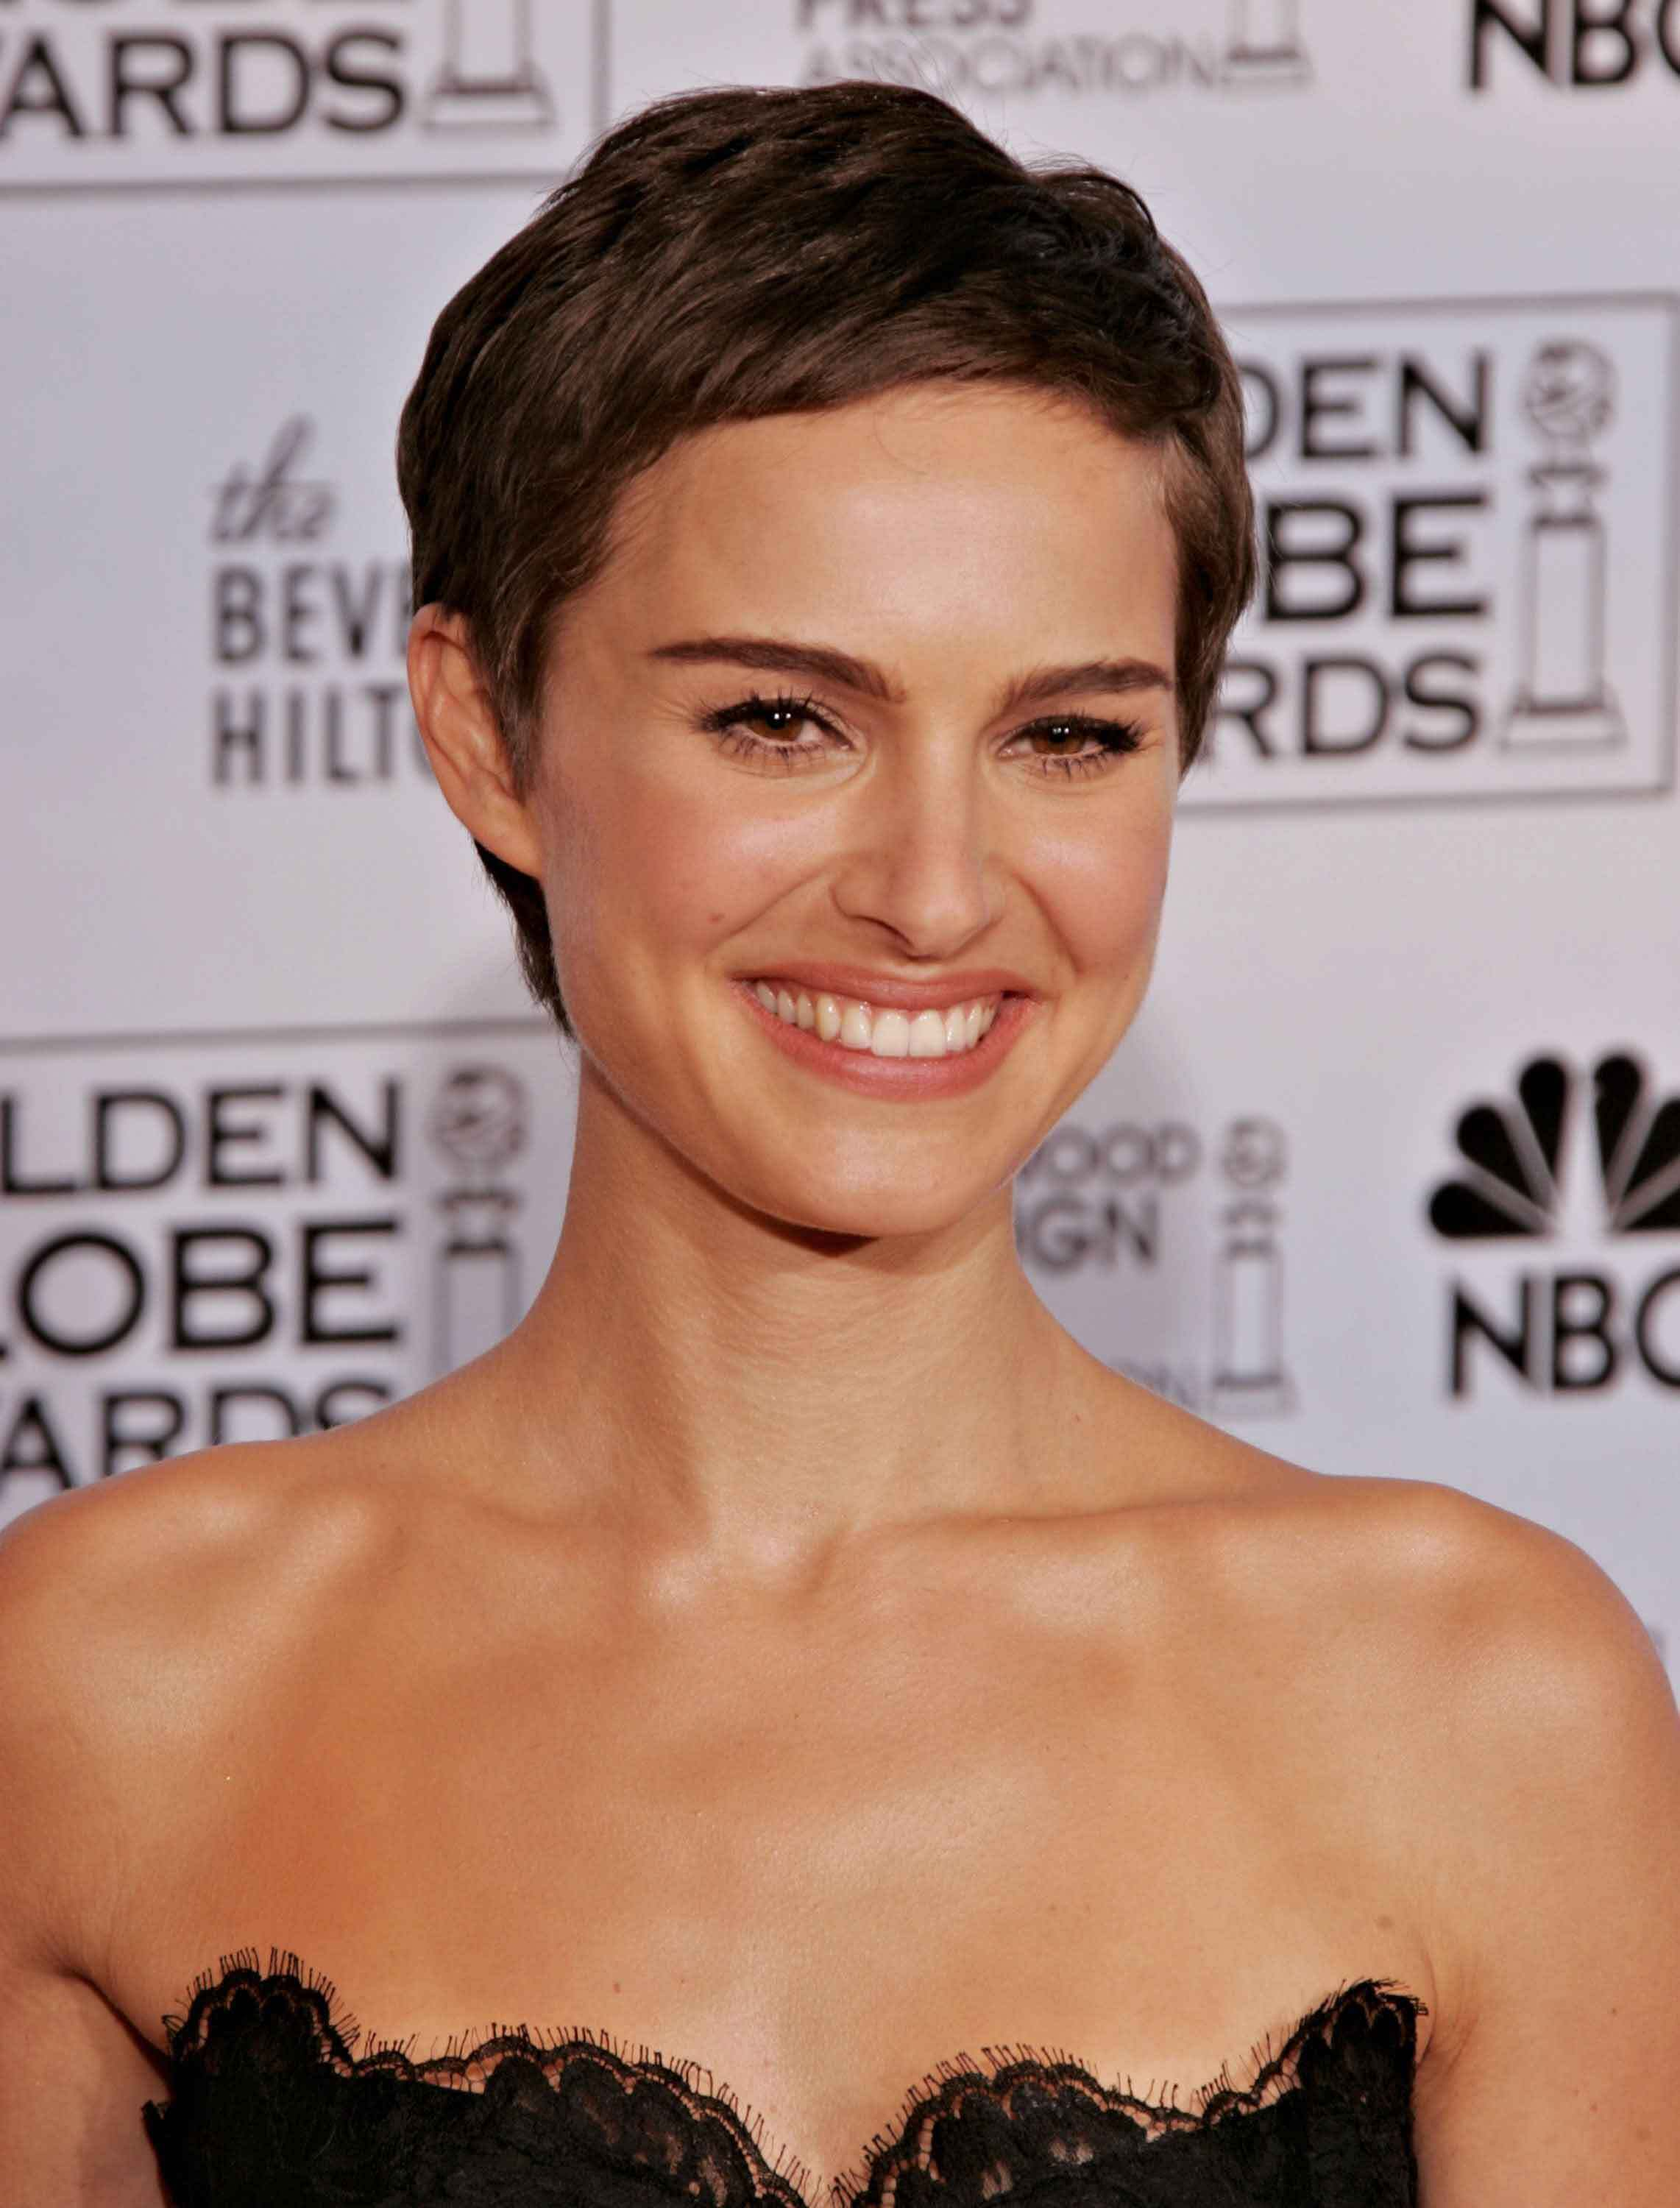 Pixie hairstyles Natalie Portman. Credit Getty Images